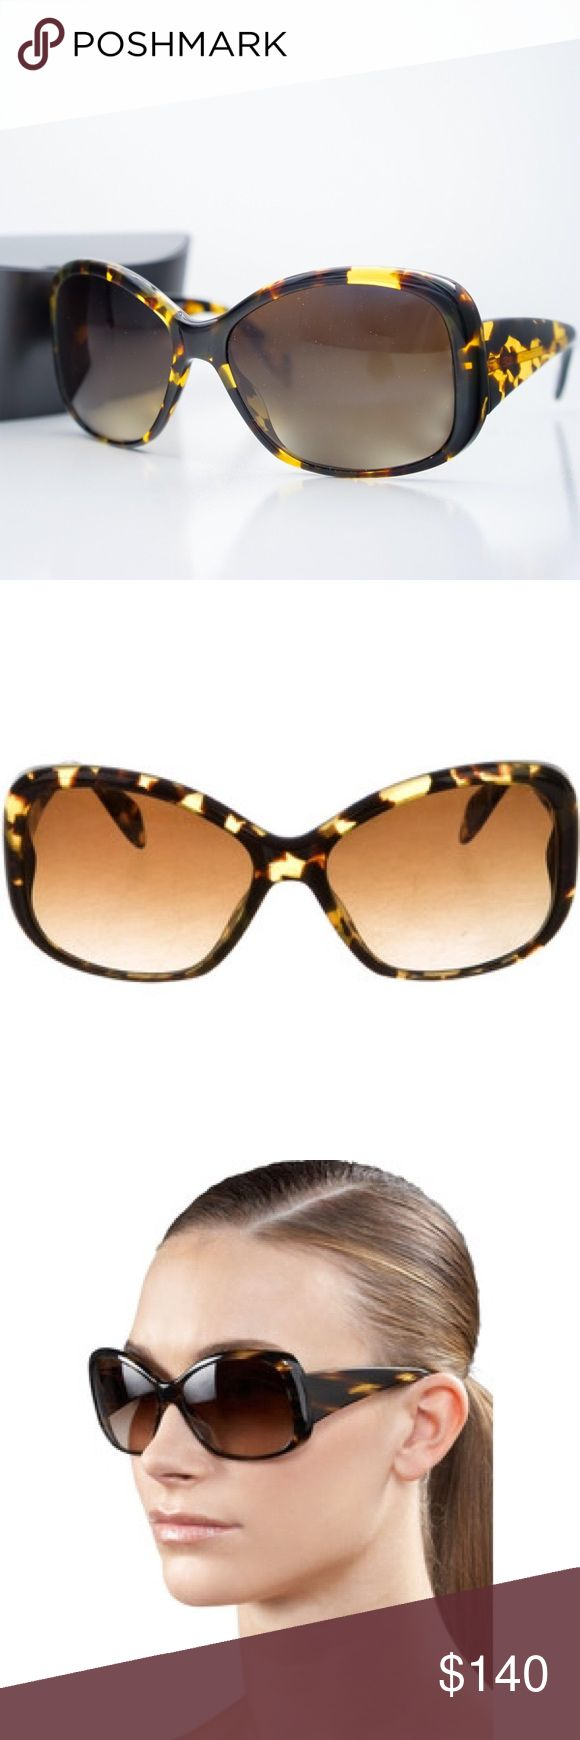 New Oliver Peoples Sunglasses De La C Tortoise These feminine Oliver Peoples sunglasses, handcrafted of sleek rounded enamel, are sized to flatter most faces. Color - coco tortoise with tonal gradient polarized lenses and rounded acetate frames with thick, contoured temples. Oliver Peoples logo plaque inlaid at temple. Wide arms taper to thin earpieces and block out the brightest rays. Popular between Hollywood elite. 6-base lens curve provides 100% UVA/UVB protection. Hand made in Italy…